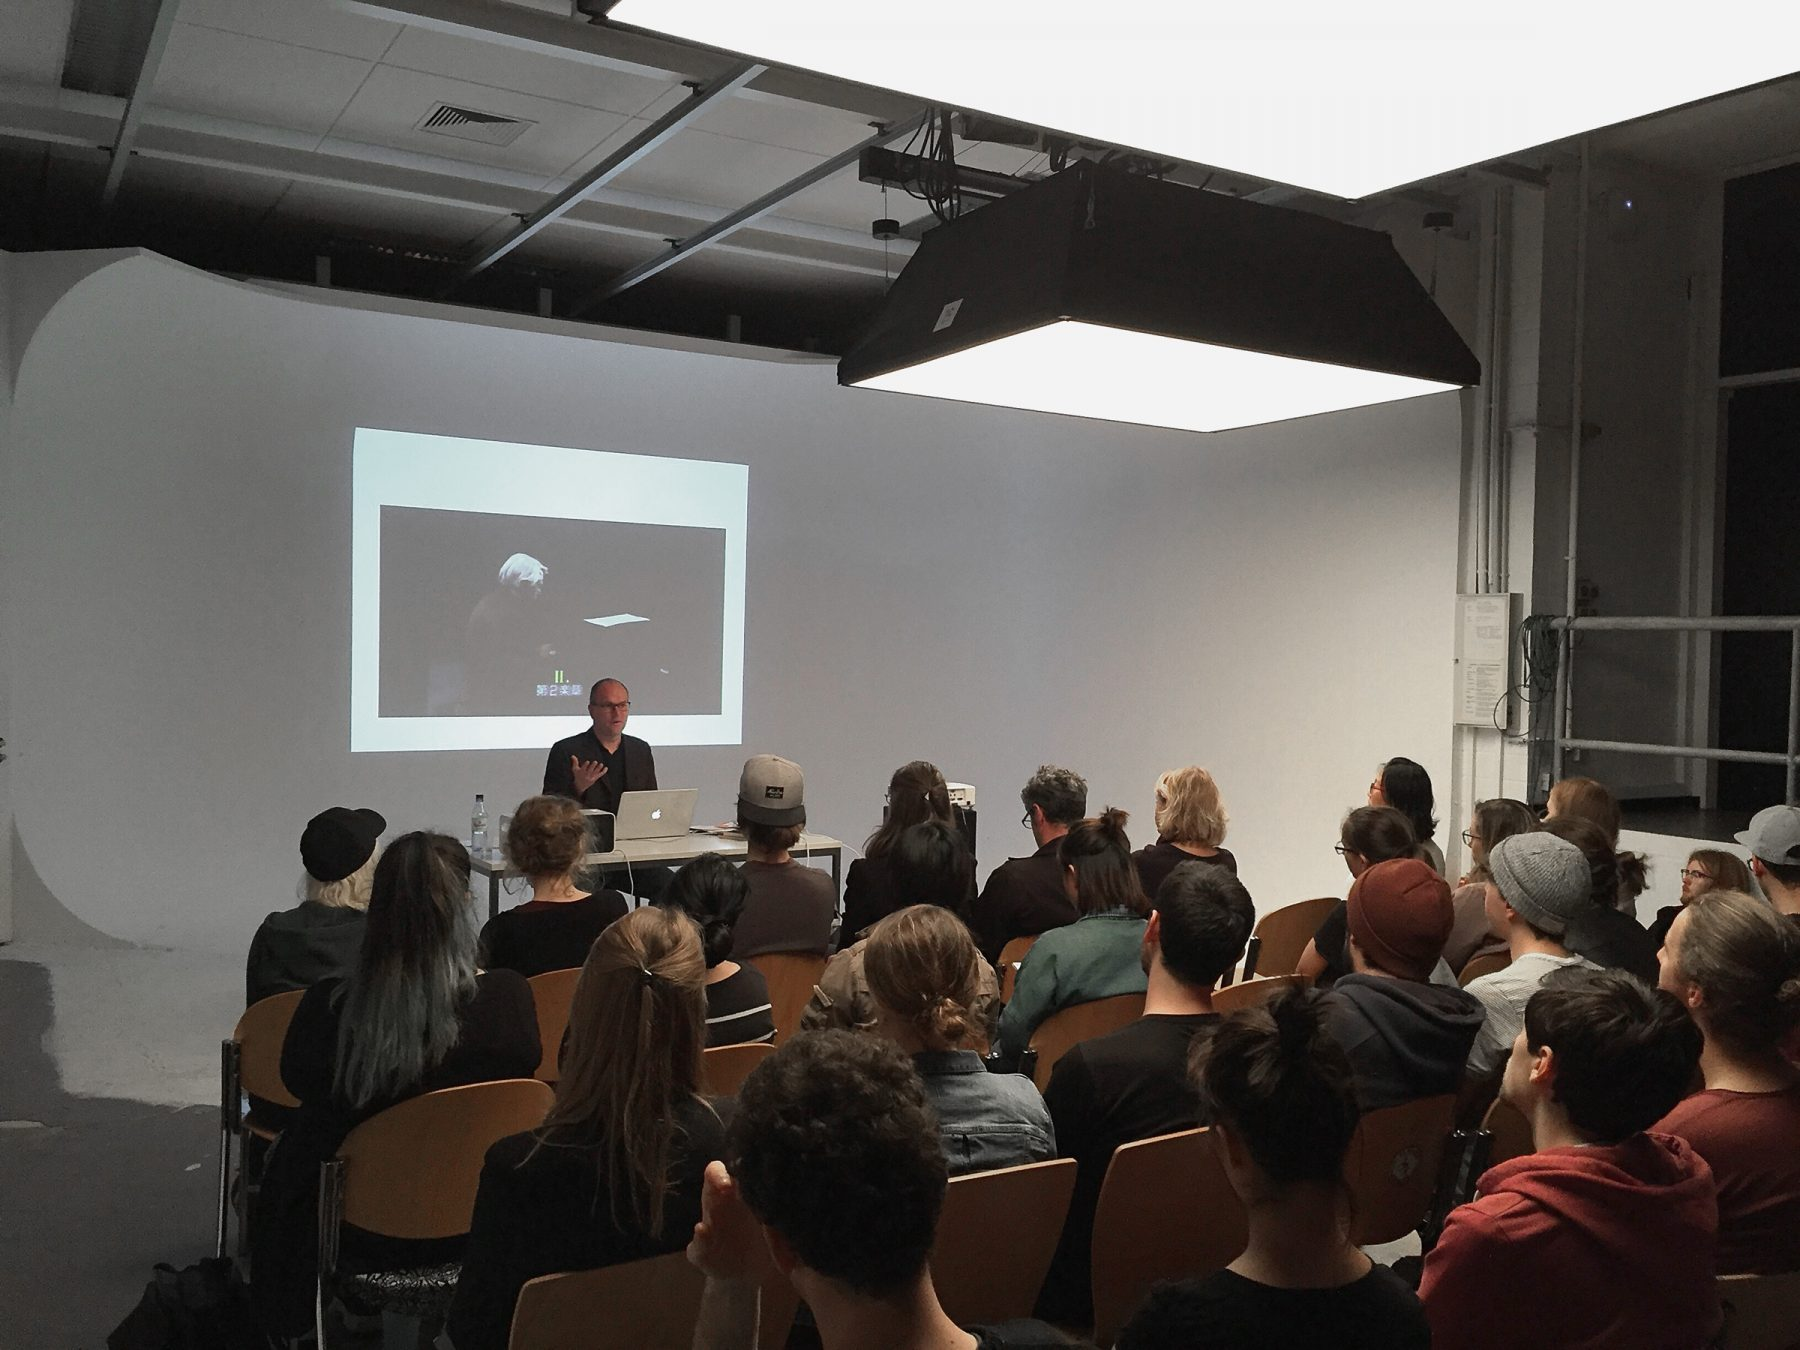 Lecture by Christoph Korn, About becoming less, Hochschule Düsseldorf, Faculty Design, David Fischbach